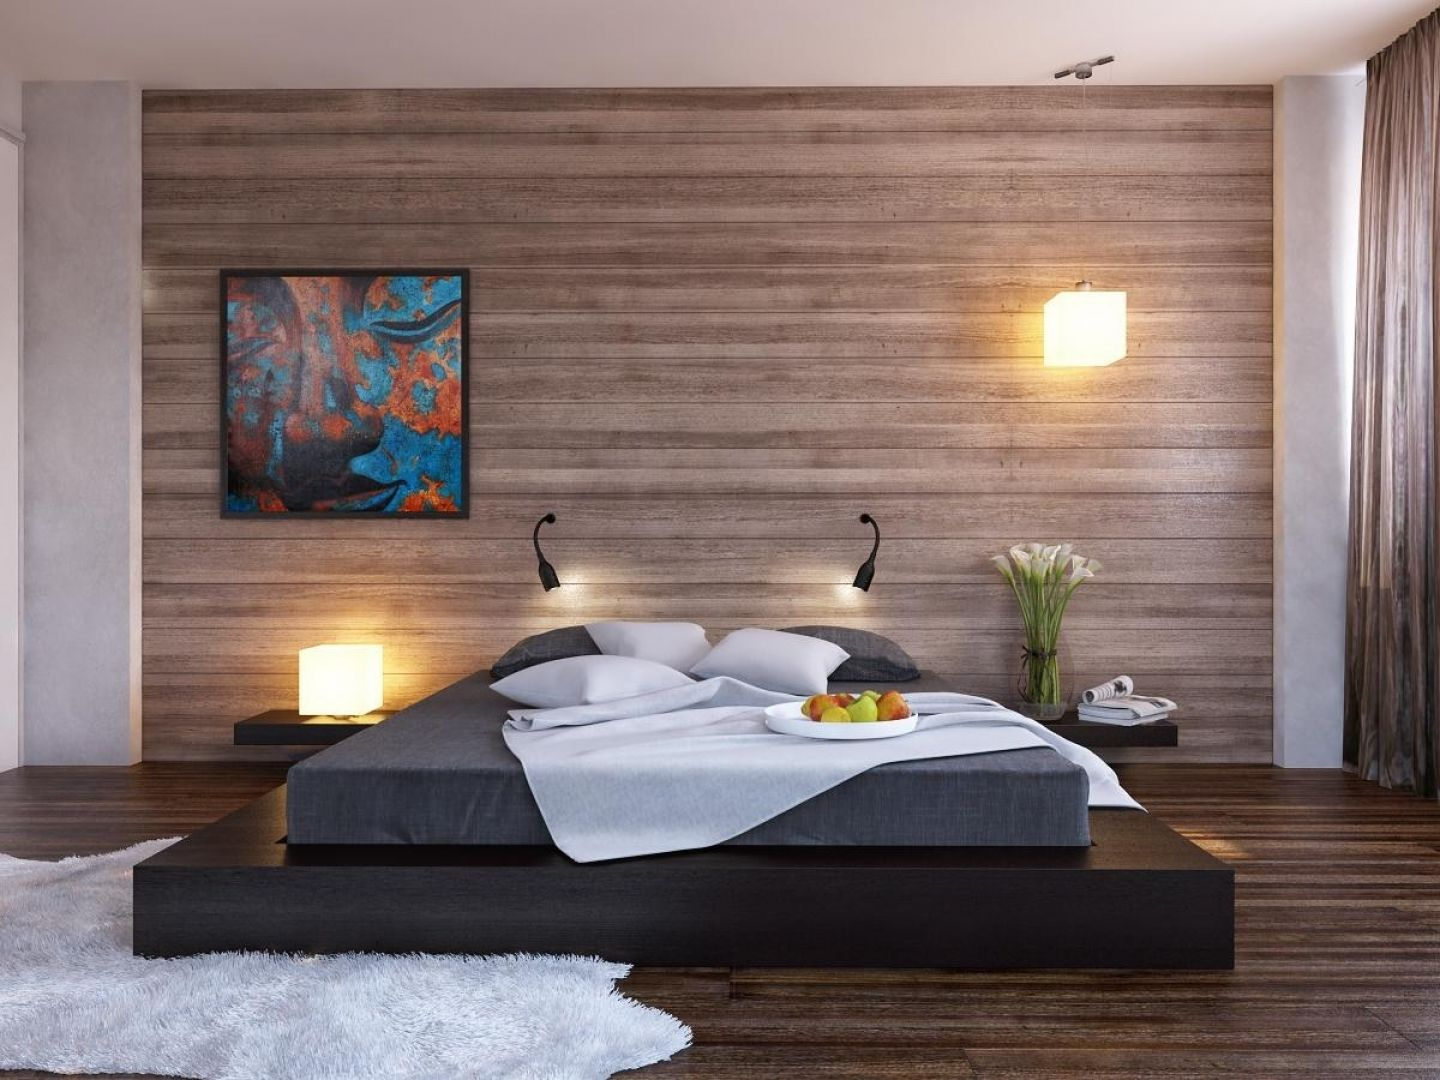 laminate wood flooring on walls here are some examples of our latest work sky high design pinterest flooring laminate flooring and wood flooring